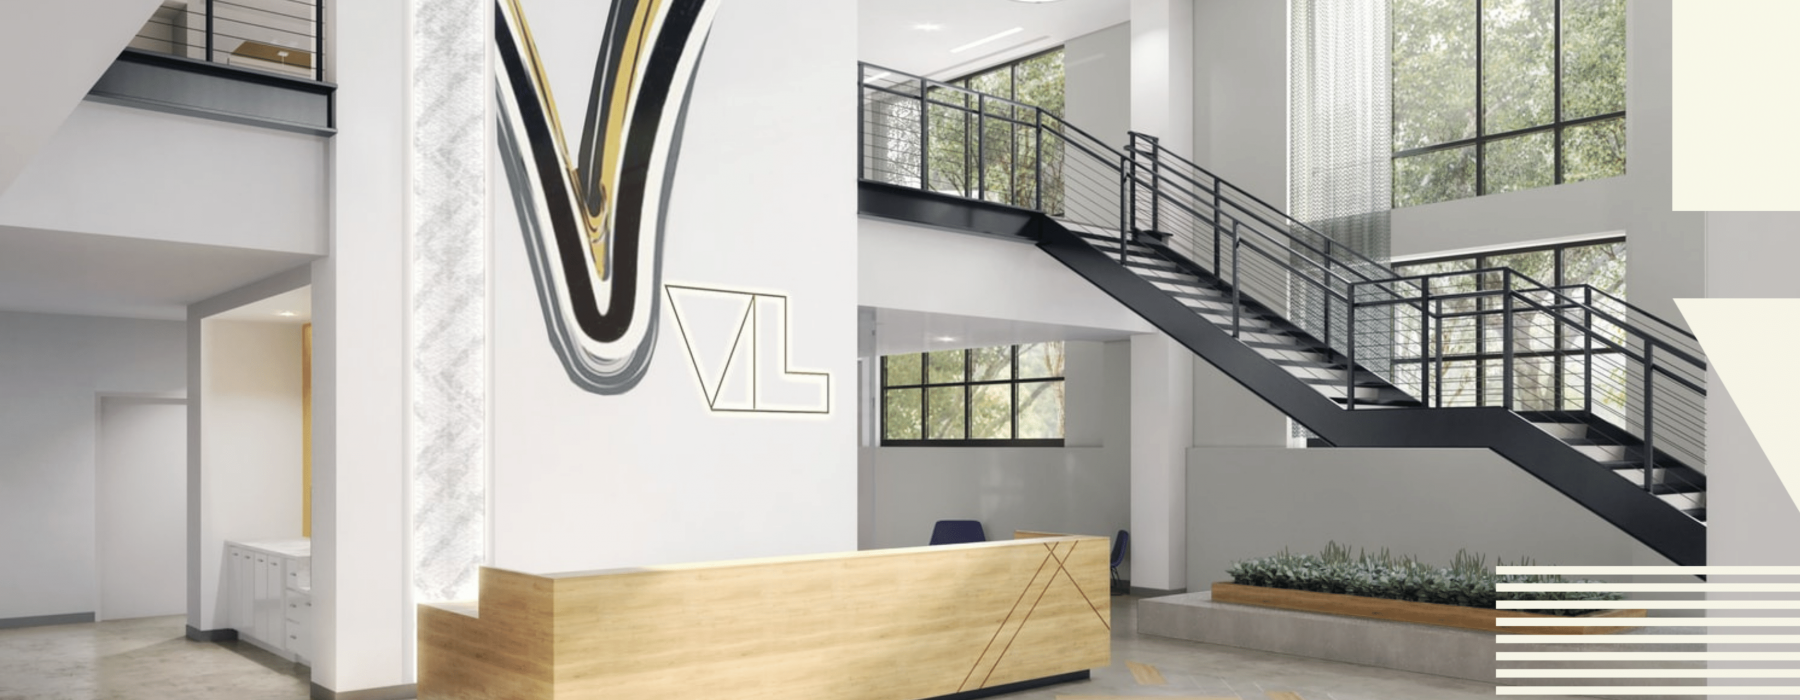 Rendering of The Val lobby